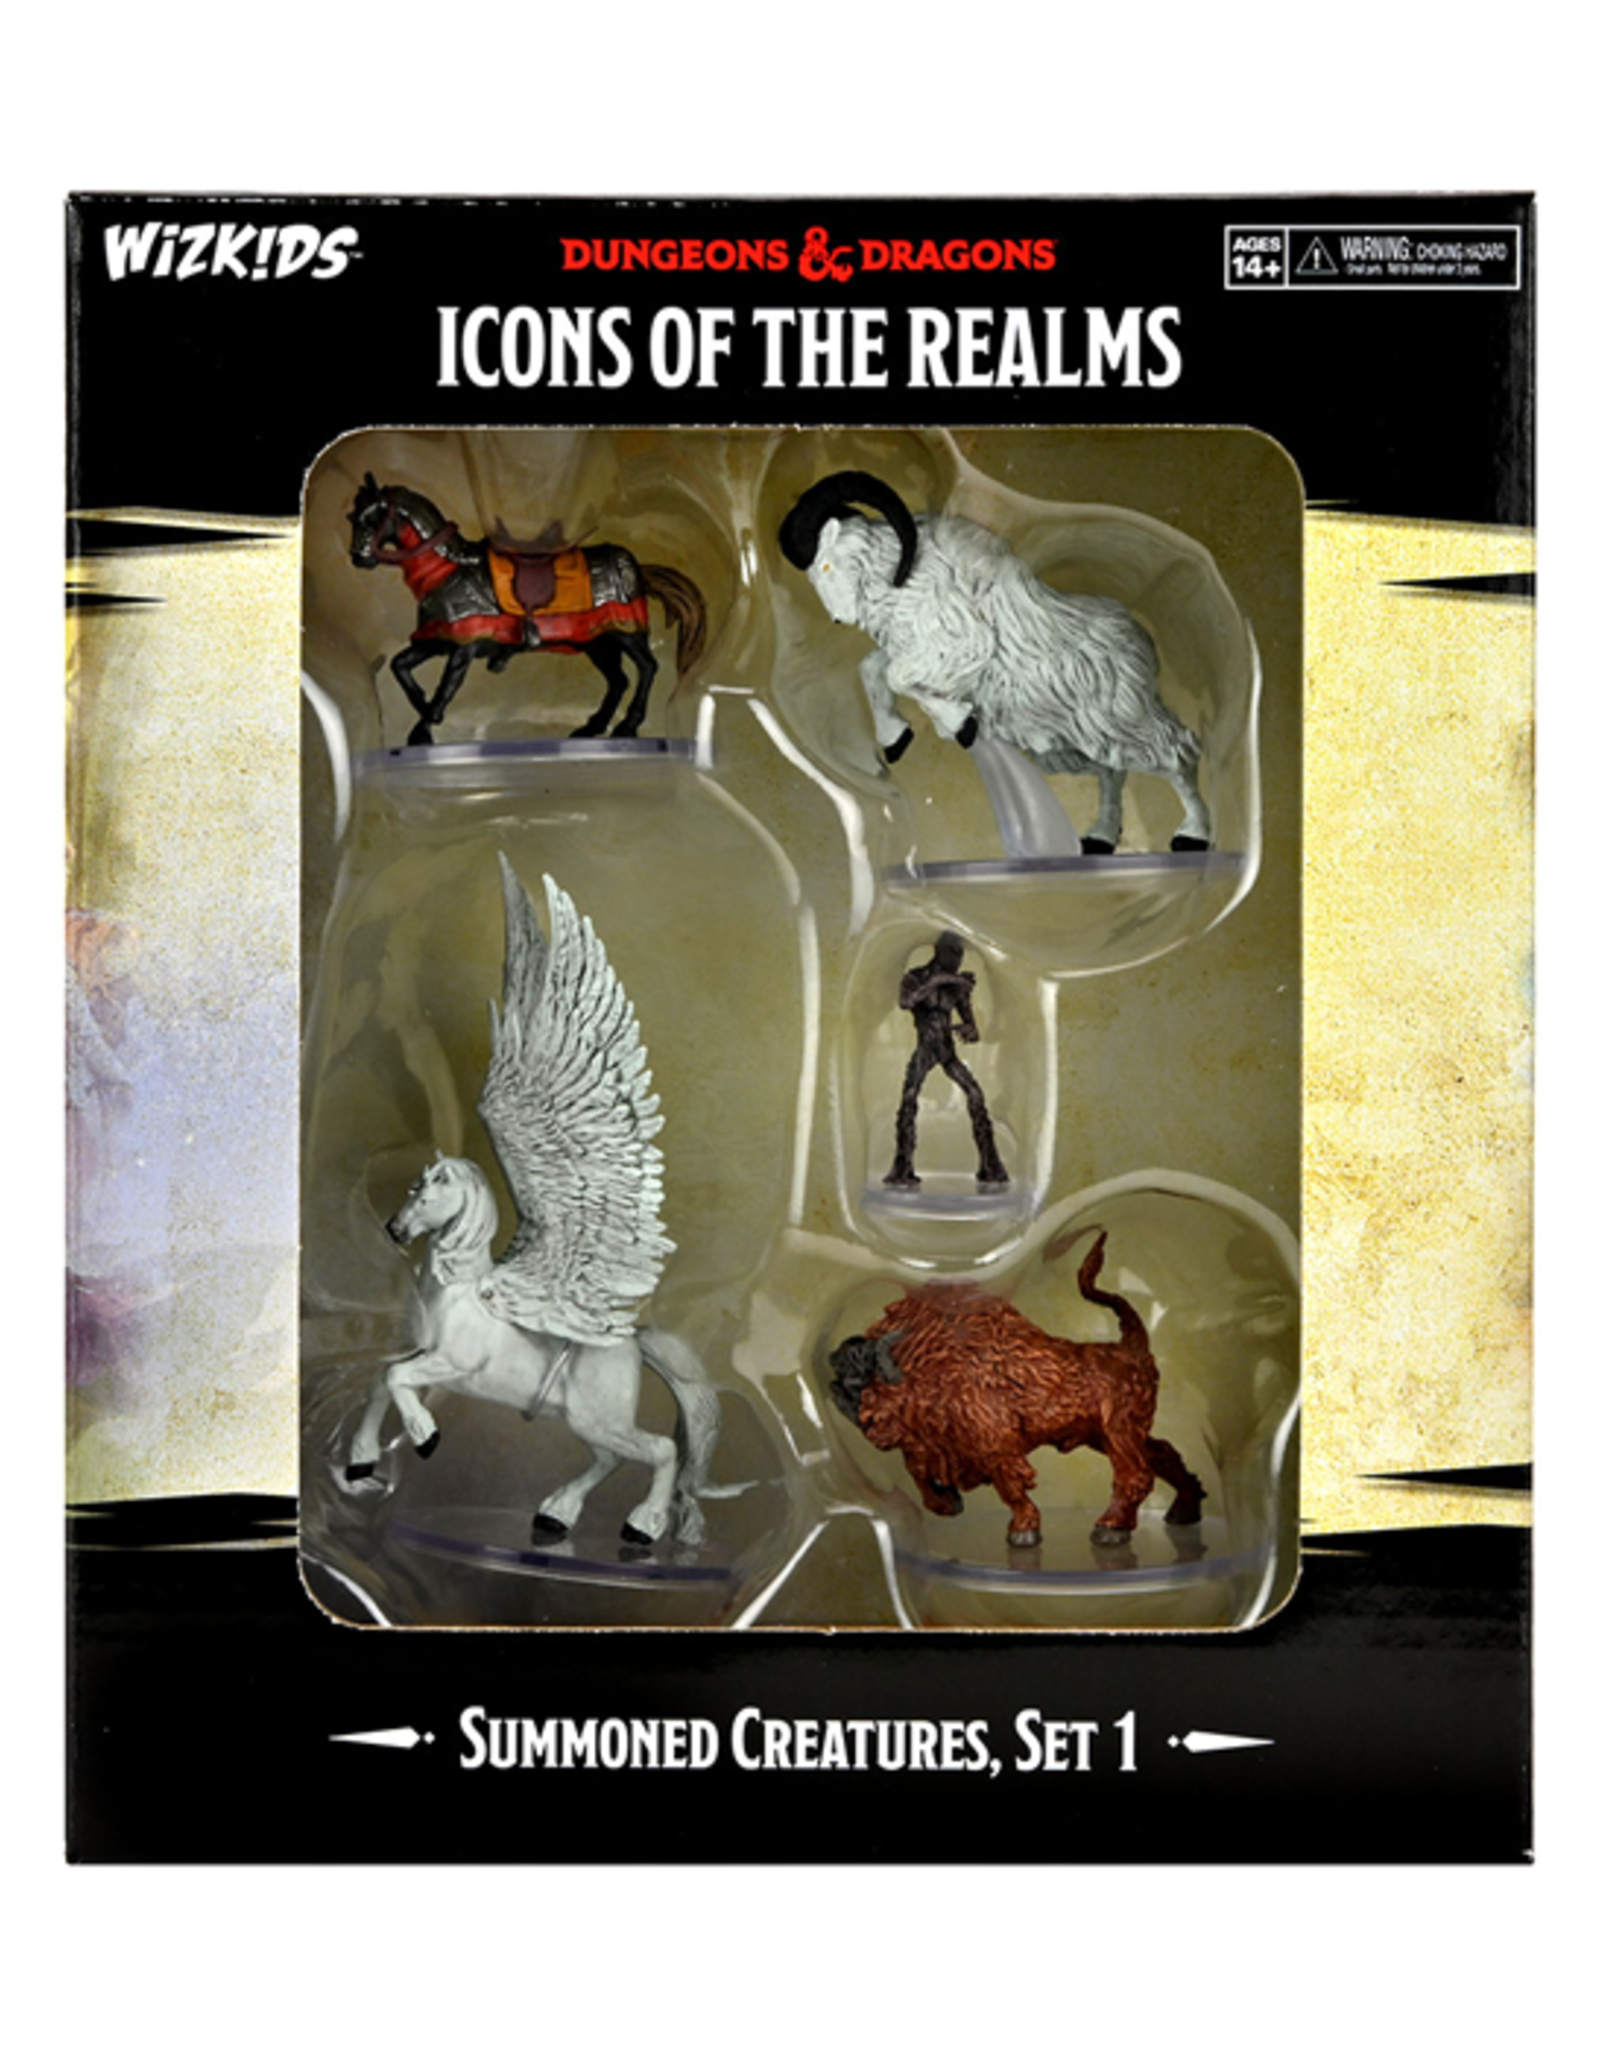 Dungeons & Dragons Dungeons & Dragons: Icons of the Realms - Summoned Creatures - Set 1